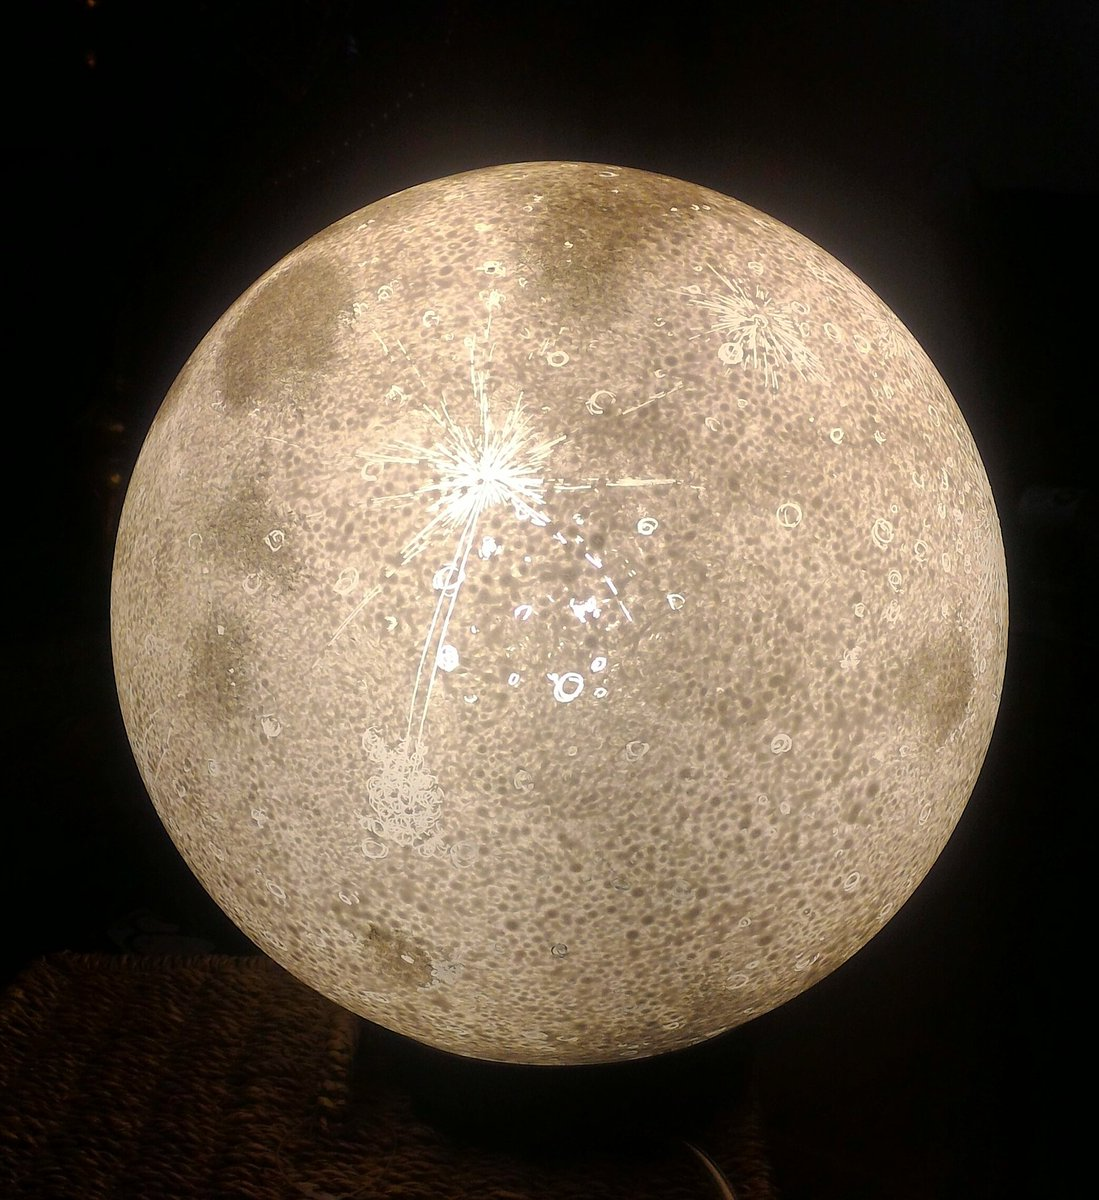 Robert fitzsimons on twitter just received an early christmas robert fitzsimons on twitter just received an early christmas present for myself a hand painted moon lamp from pulsarmoonlight the realistic moons and solutioingenieria Choice Image